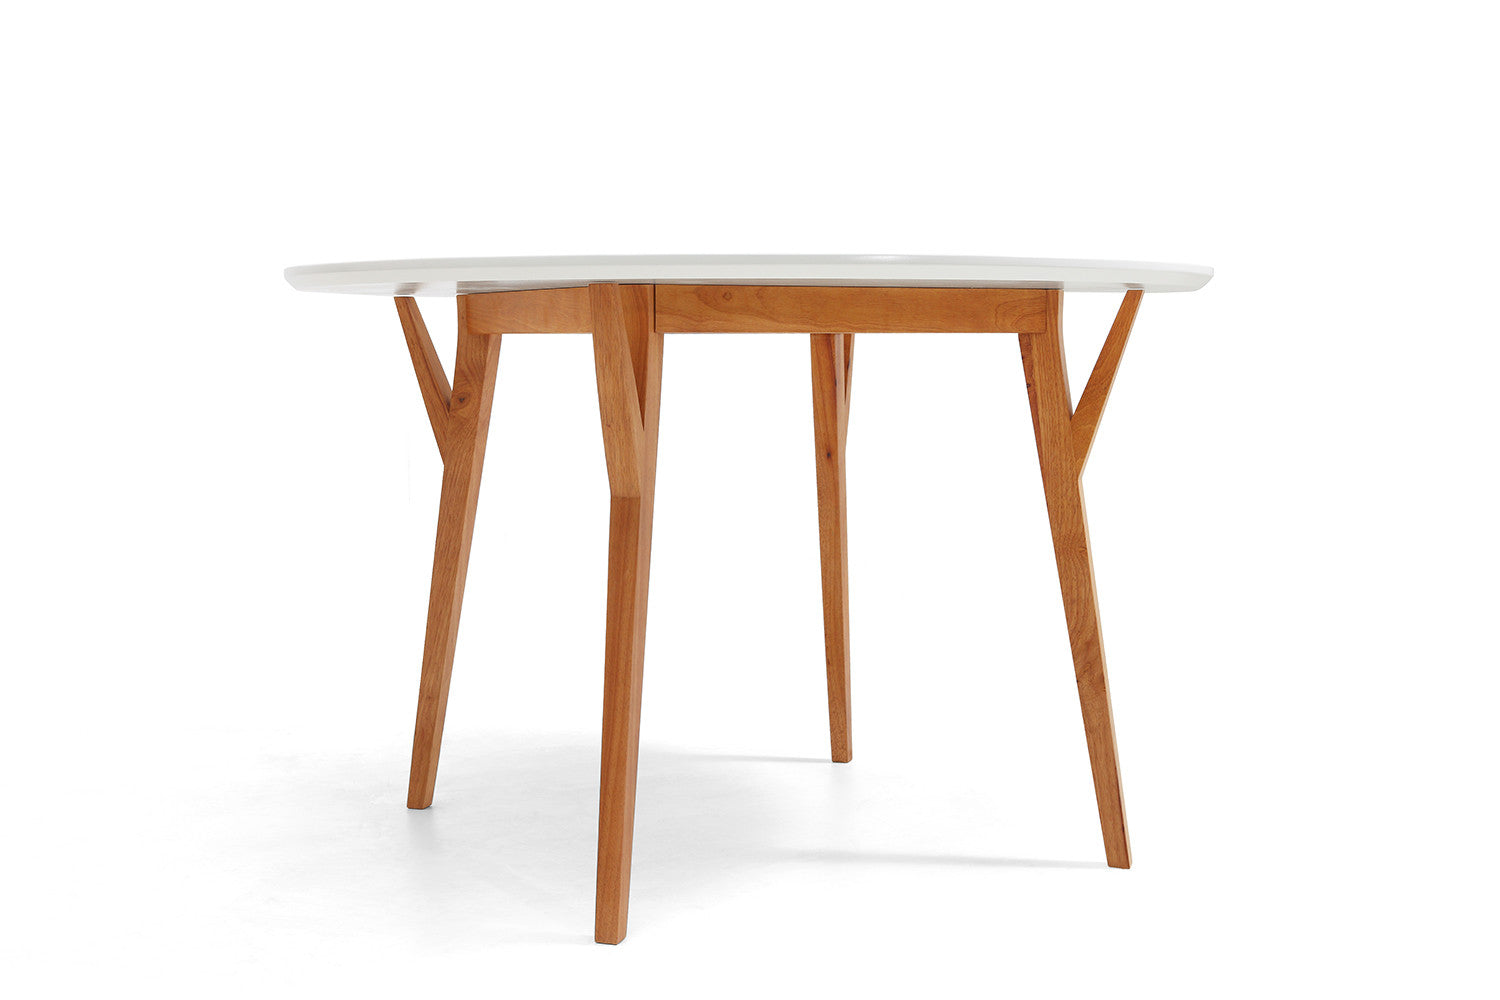 Table de salle manger ronde design scandinave moesa for Table salle a manger triangulaire